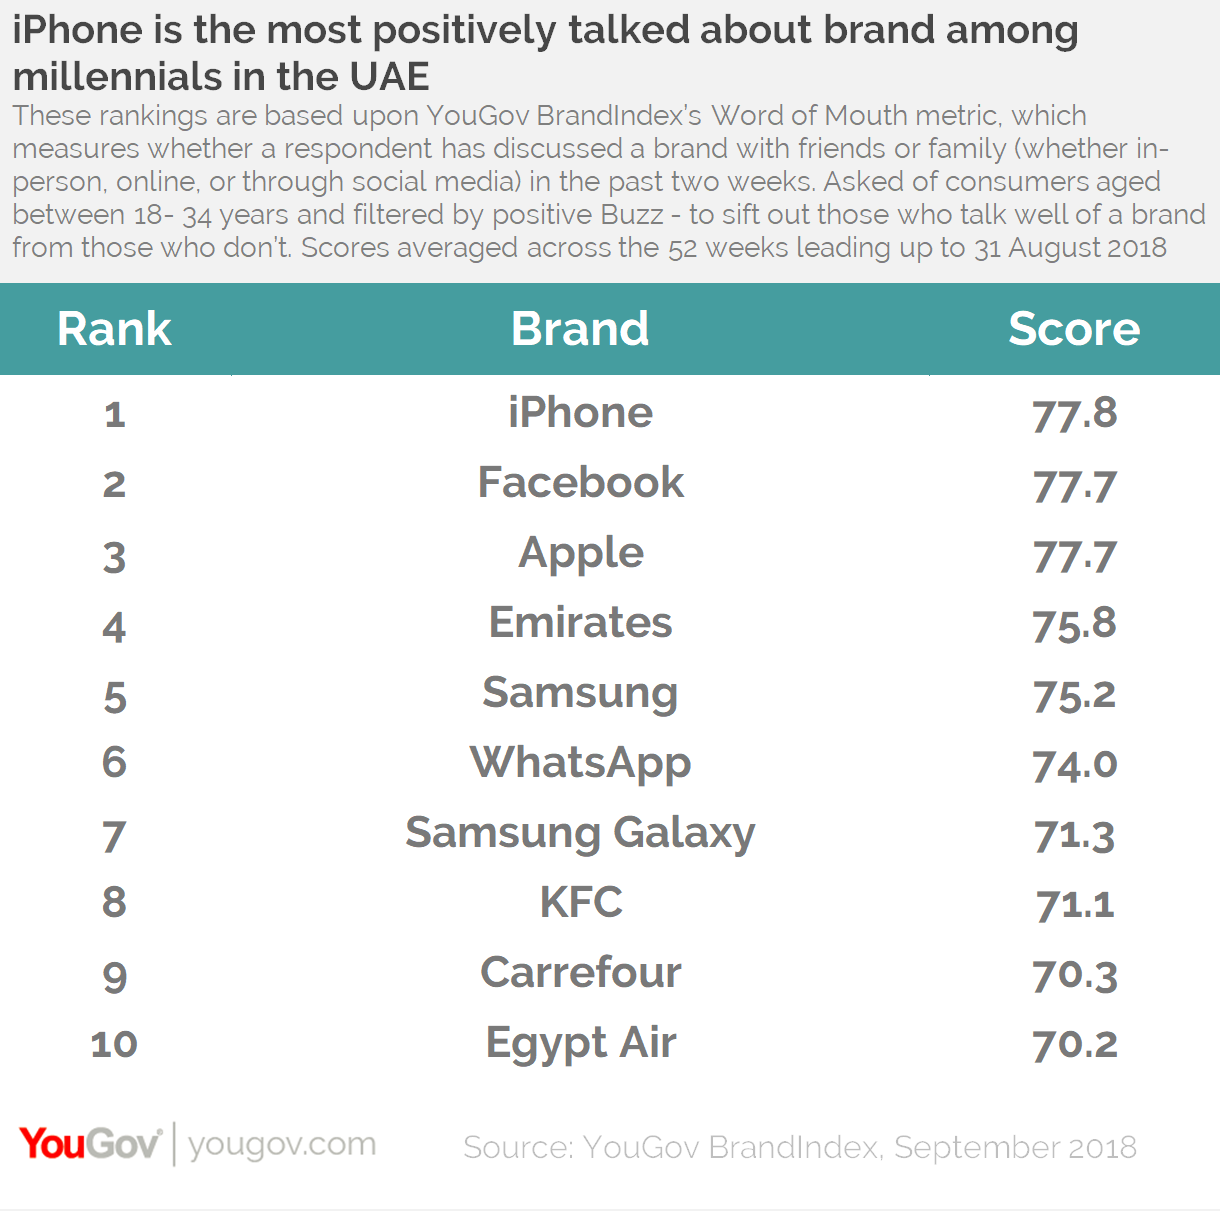 YouGov Millennial Brand Rankings: Top 10 UAE